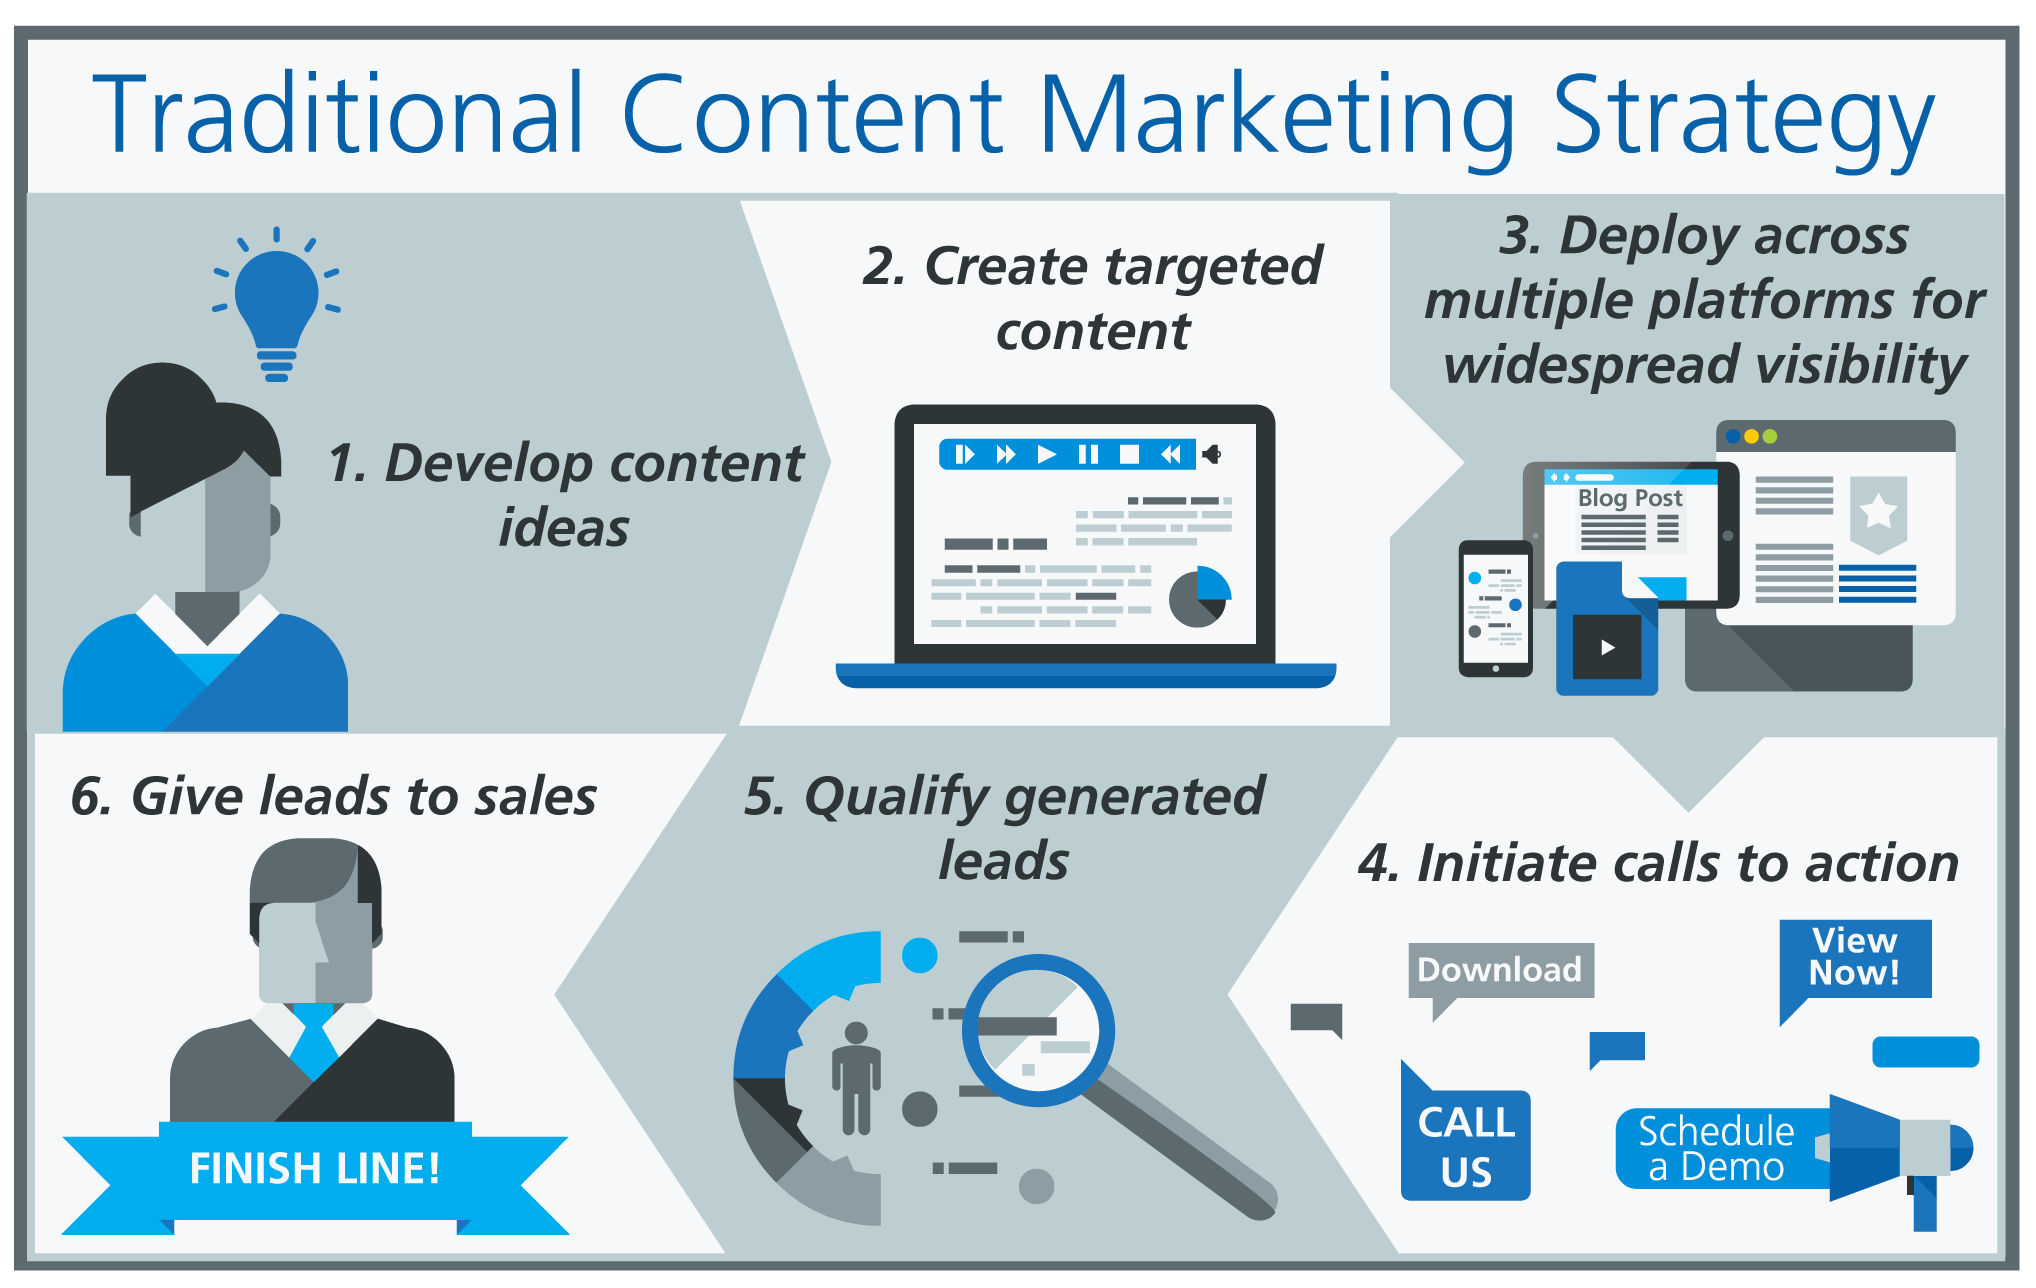 About Accent Marketing Content Marketing Strategy Traditional